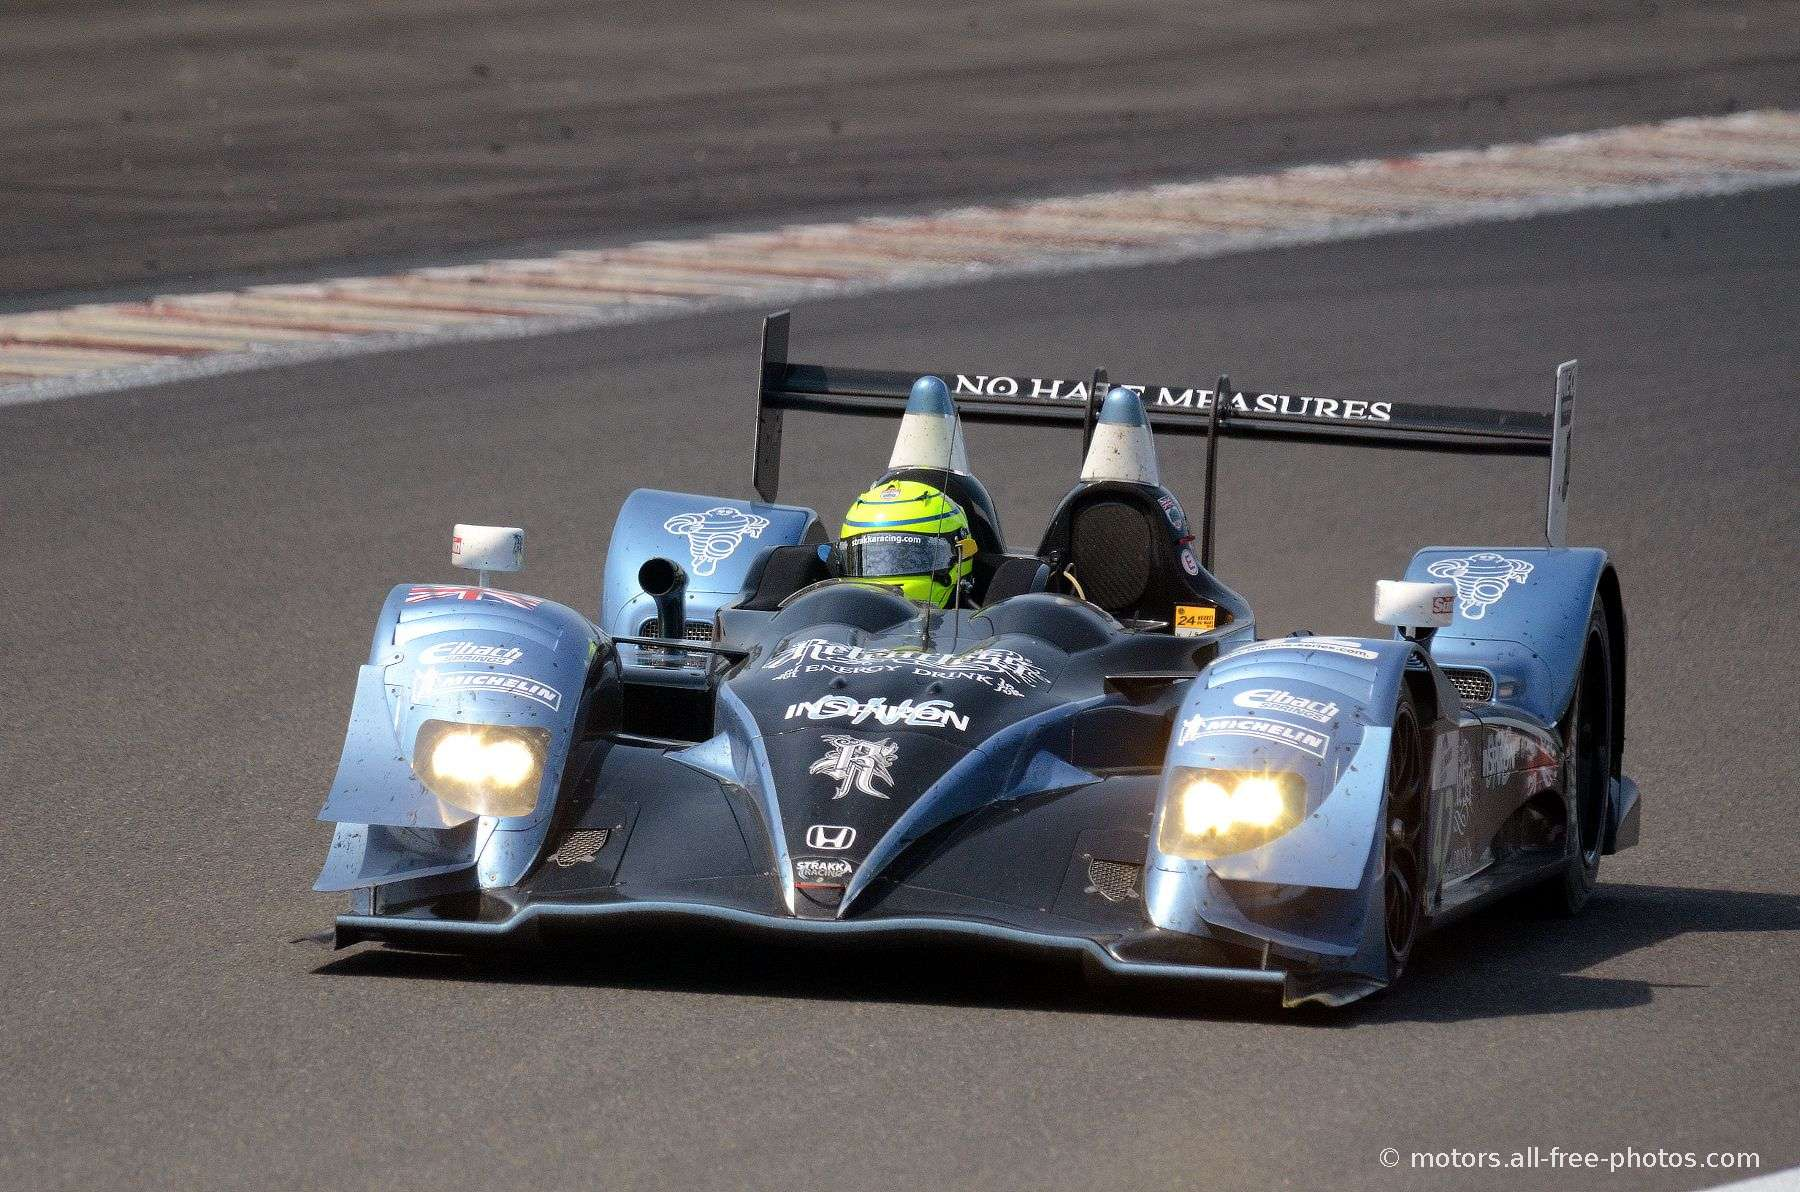 HPD ARX 01 - Team Strakka Racing